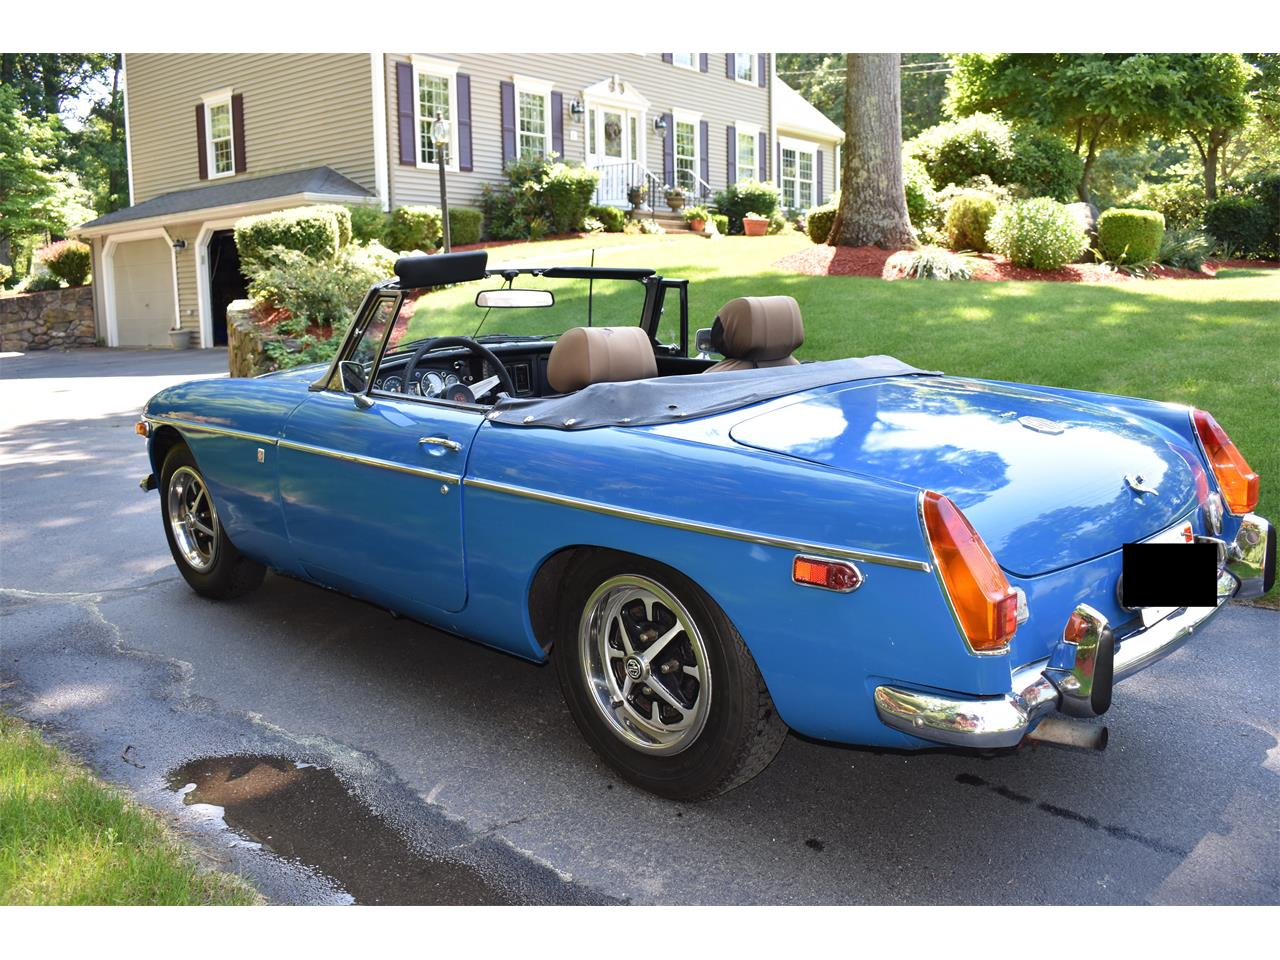 Large Picture of 1974 MG MGB Offered by a Private Seller - LB9Q